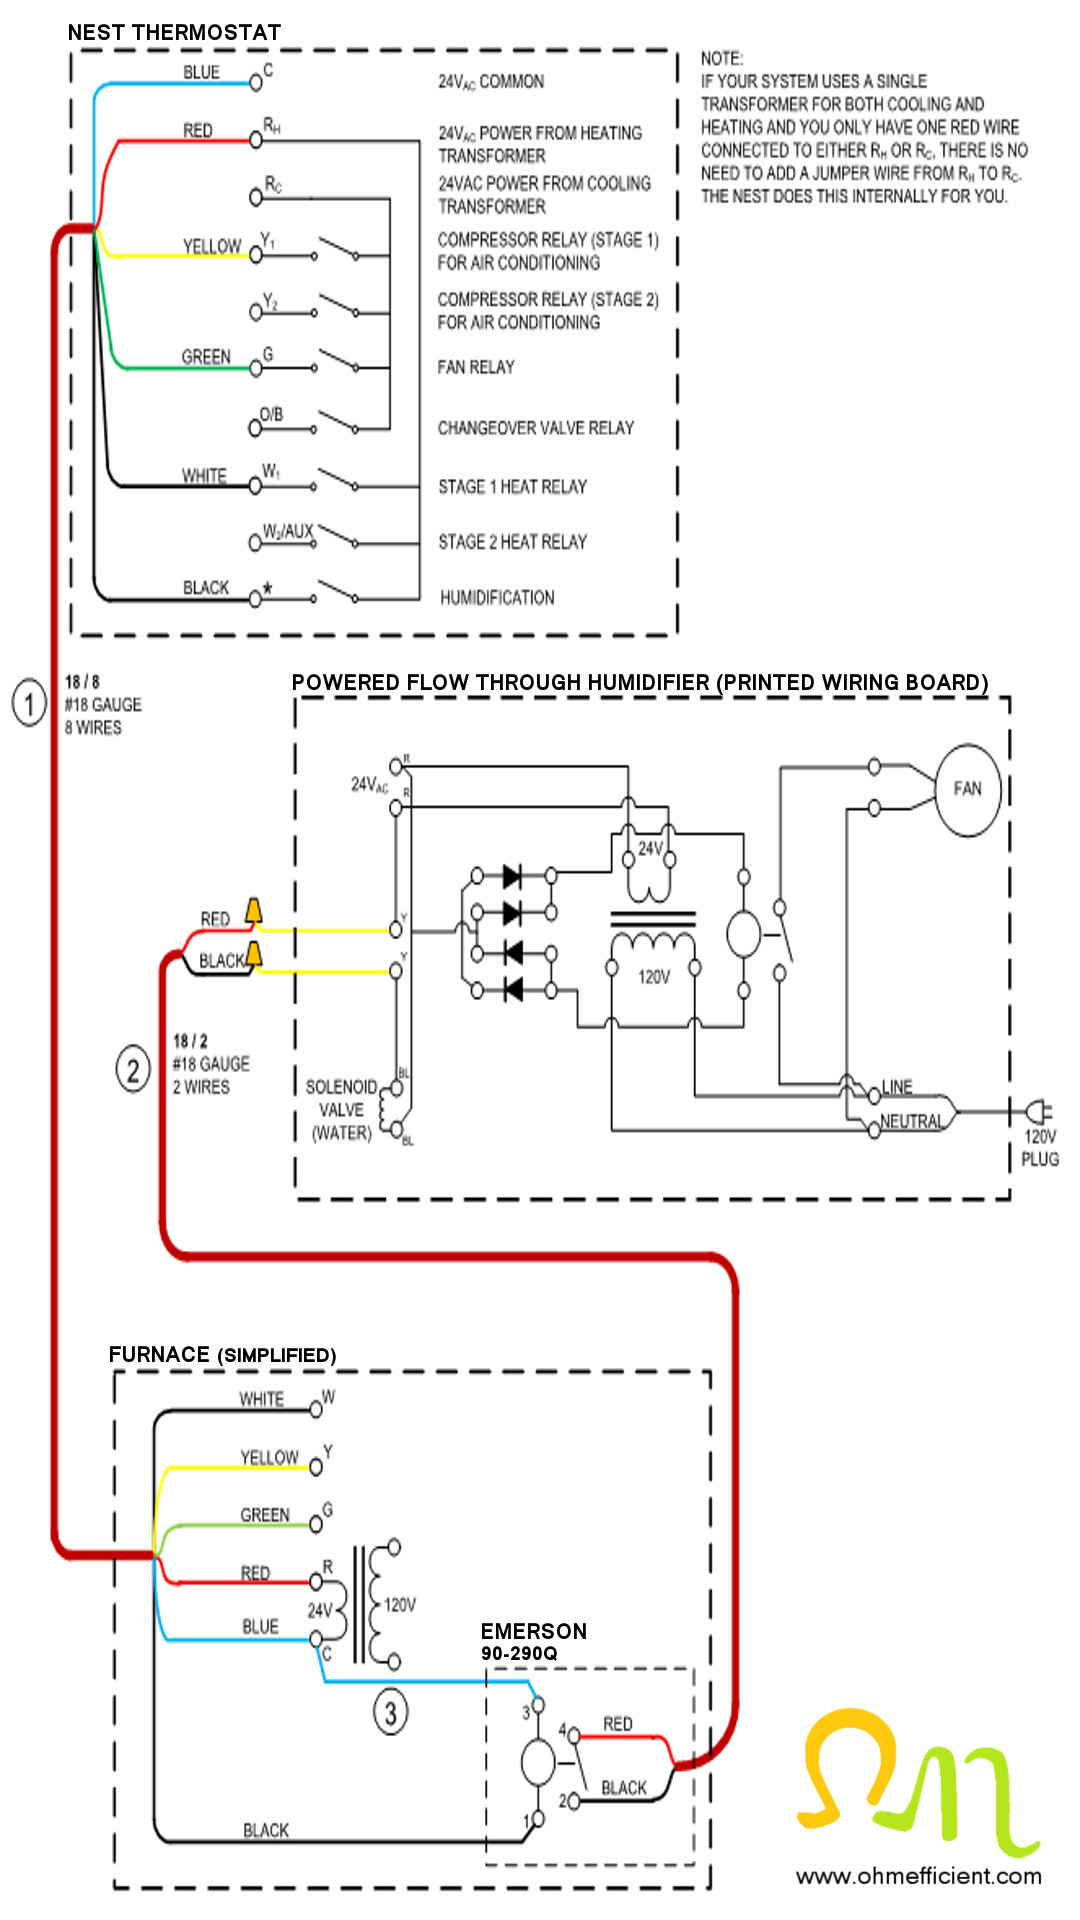 How To Connect & Setup A Nest Thermostat To Function As A Humidistat - Nest Wiring Diagram No Heat